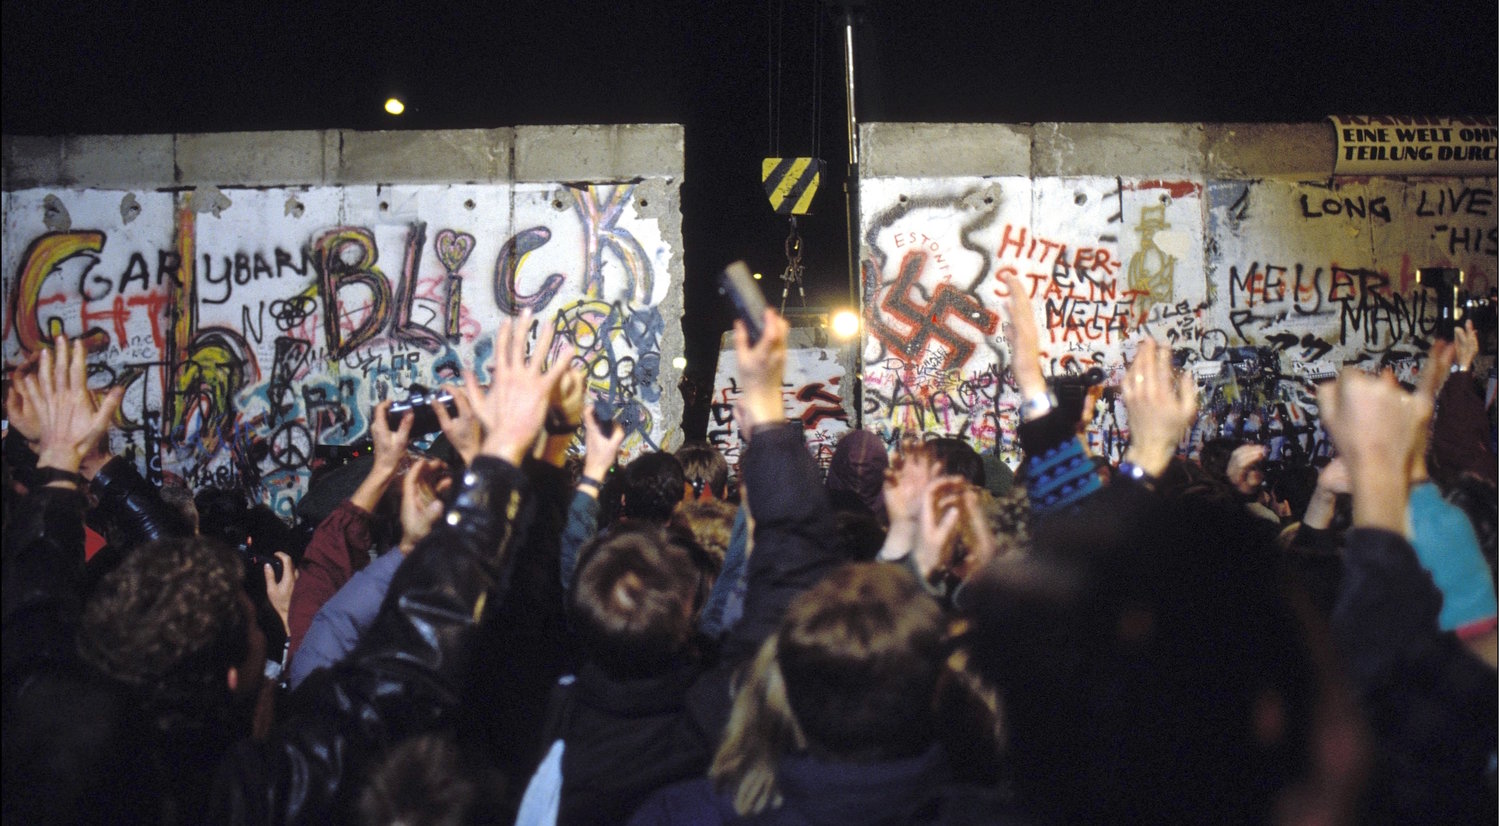 The Berlin Wall opening in November 1989.